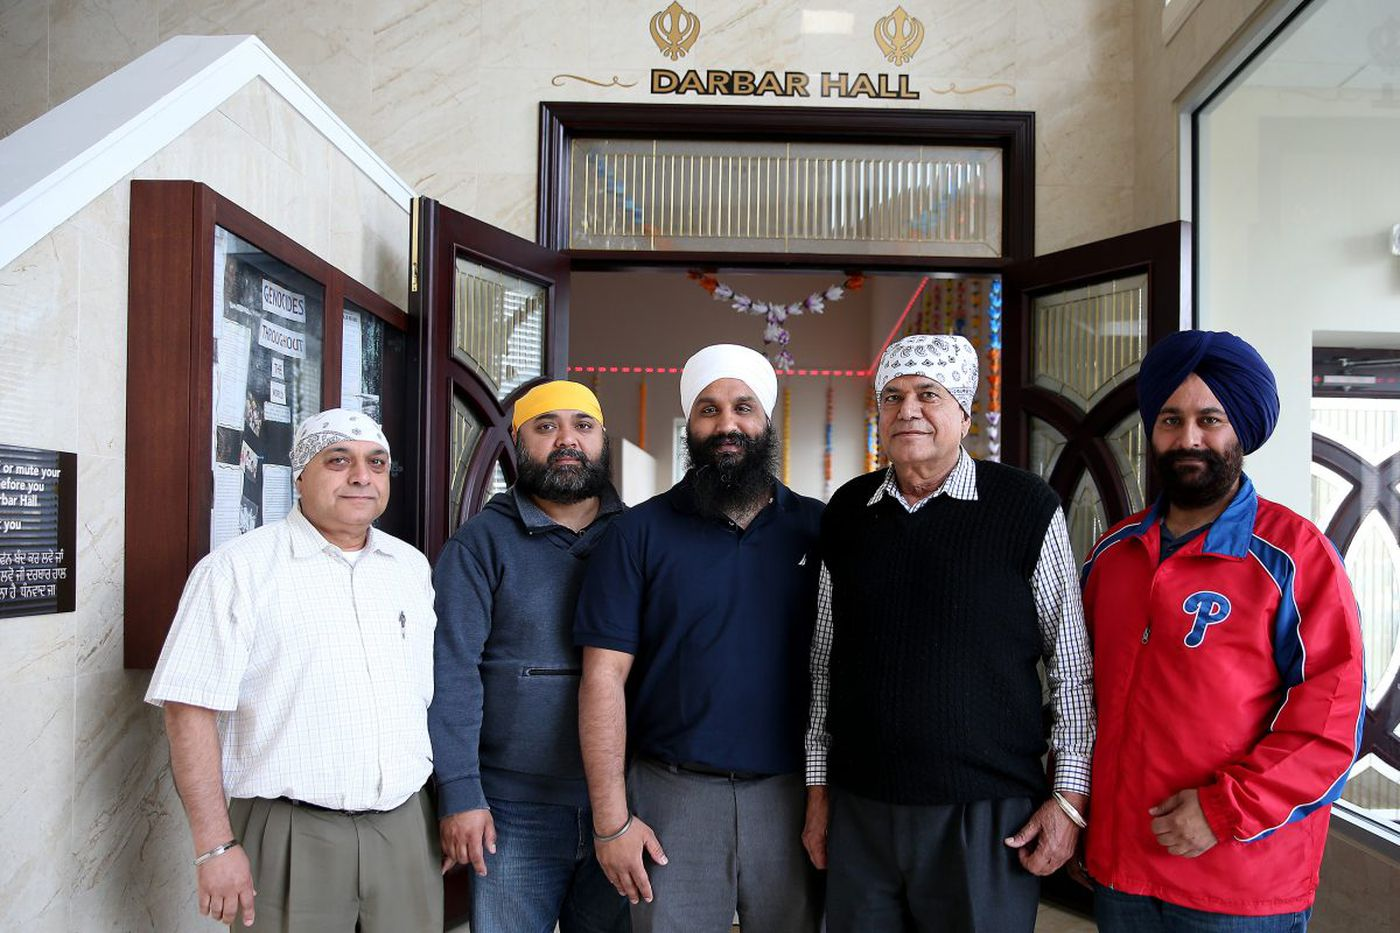 New Jersey Sikhs seek to promote awareness through acts of charity and faith